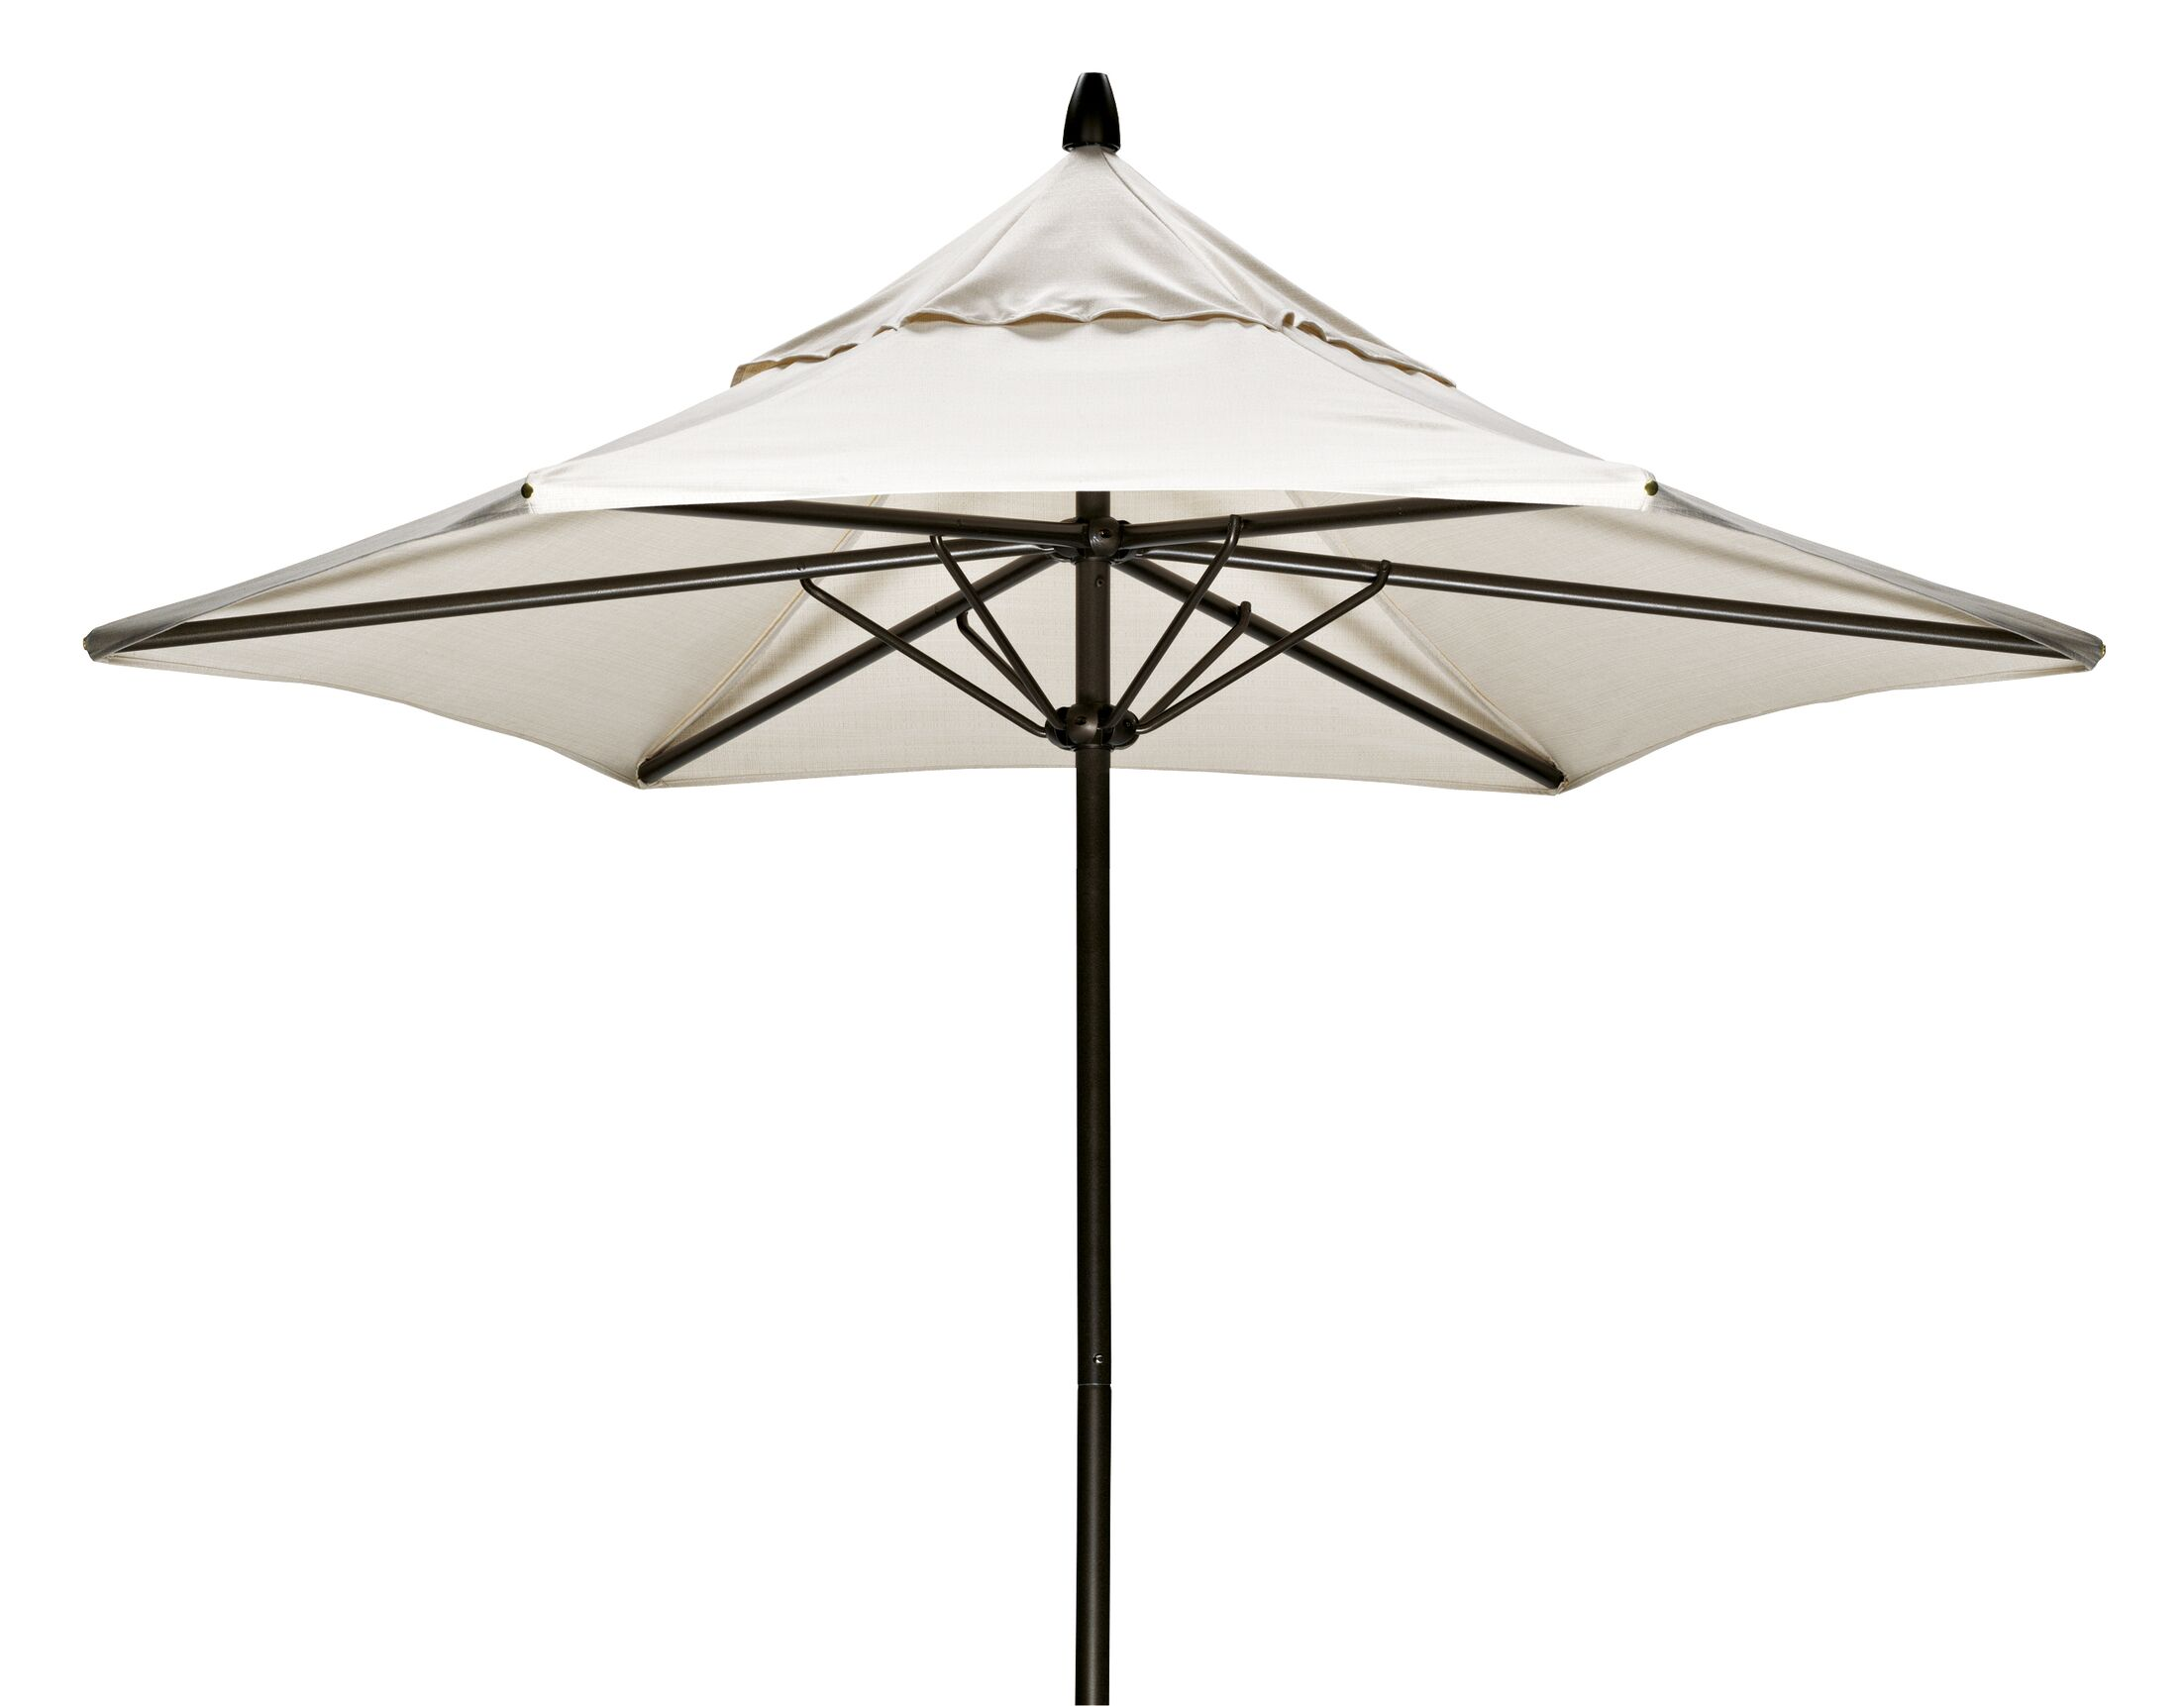 Commercial 7.5' Market Umbrella Frame Finish: Textured Snow, Fabric: Strickland